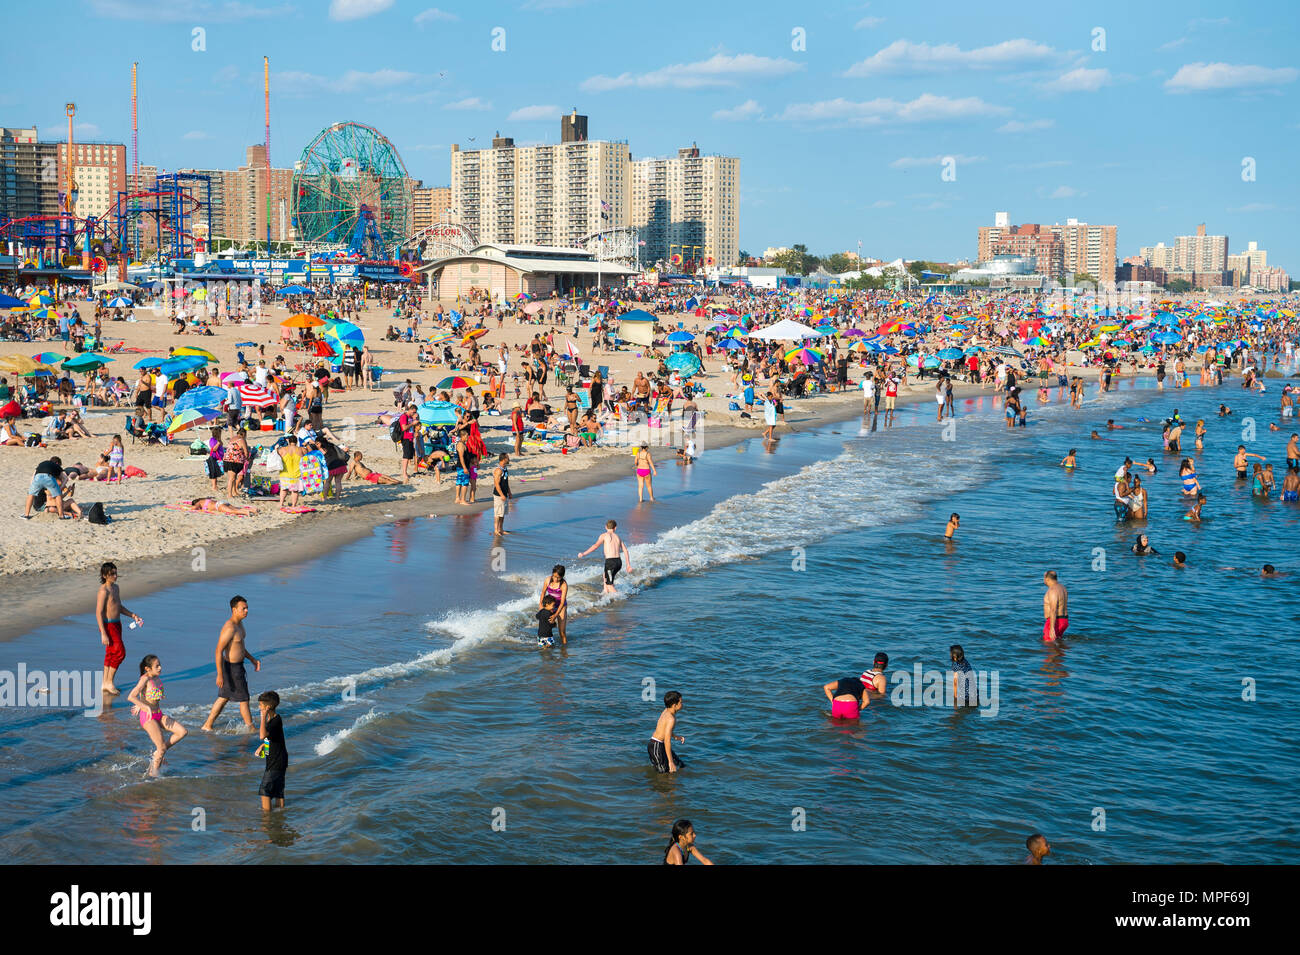 NEW YORK CITY - AUGUST 20, 2017: View of people enjoying a summer's day on crowded Coney Island beach and boardwalk. - Stock Image